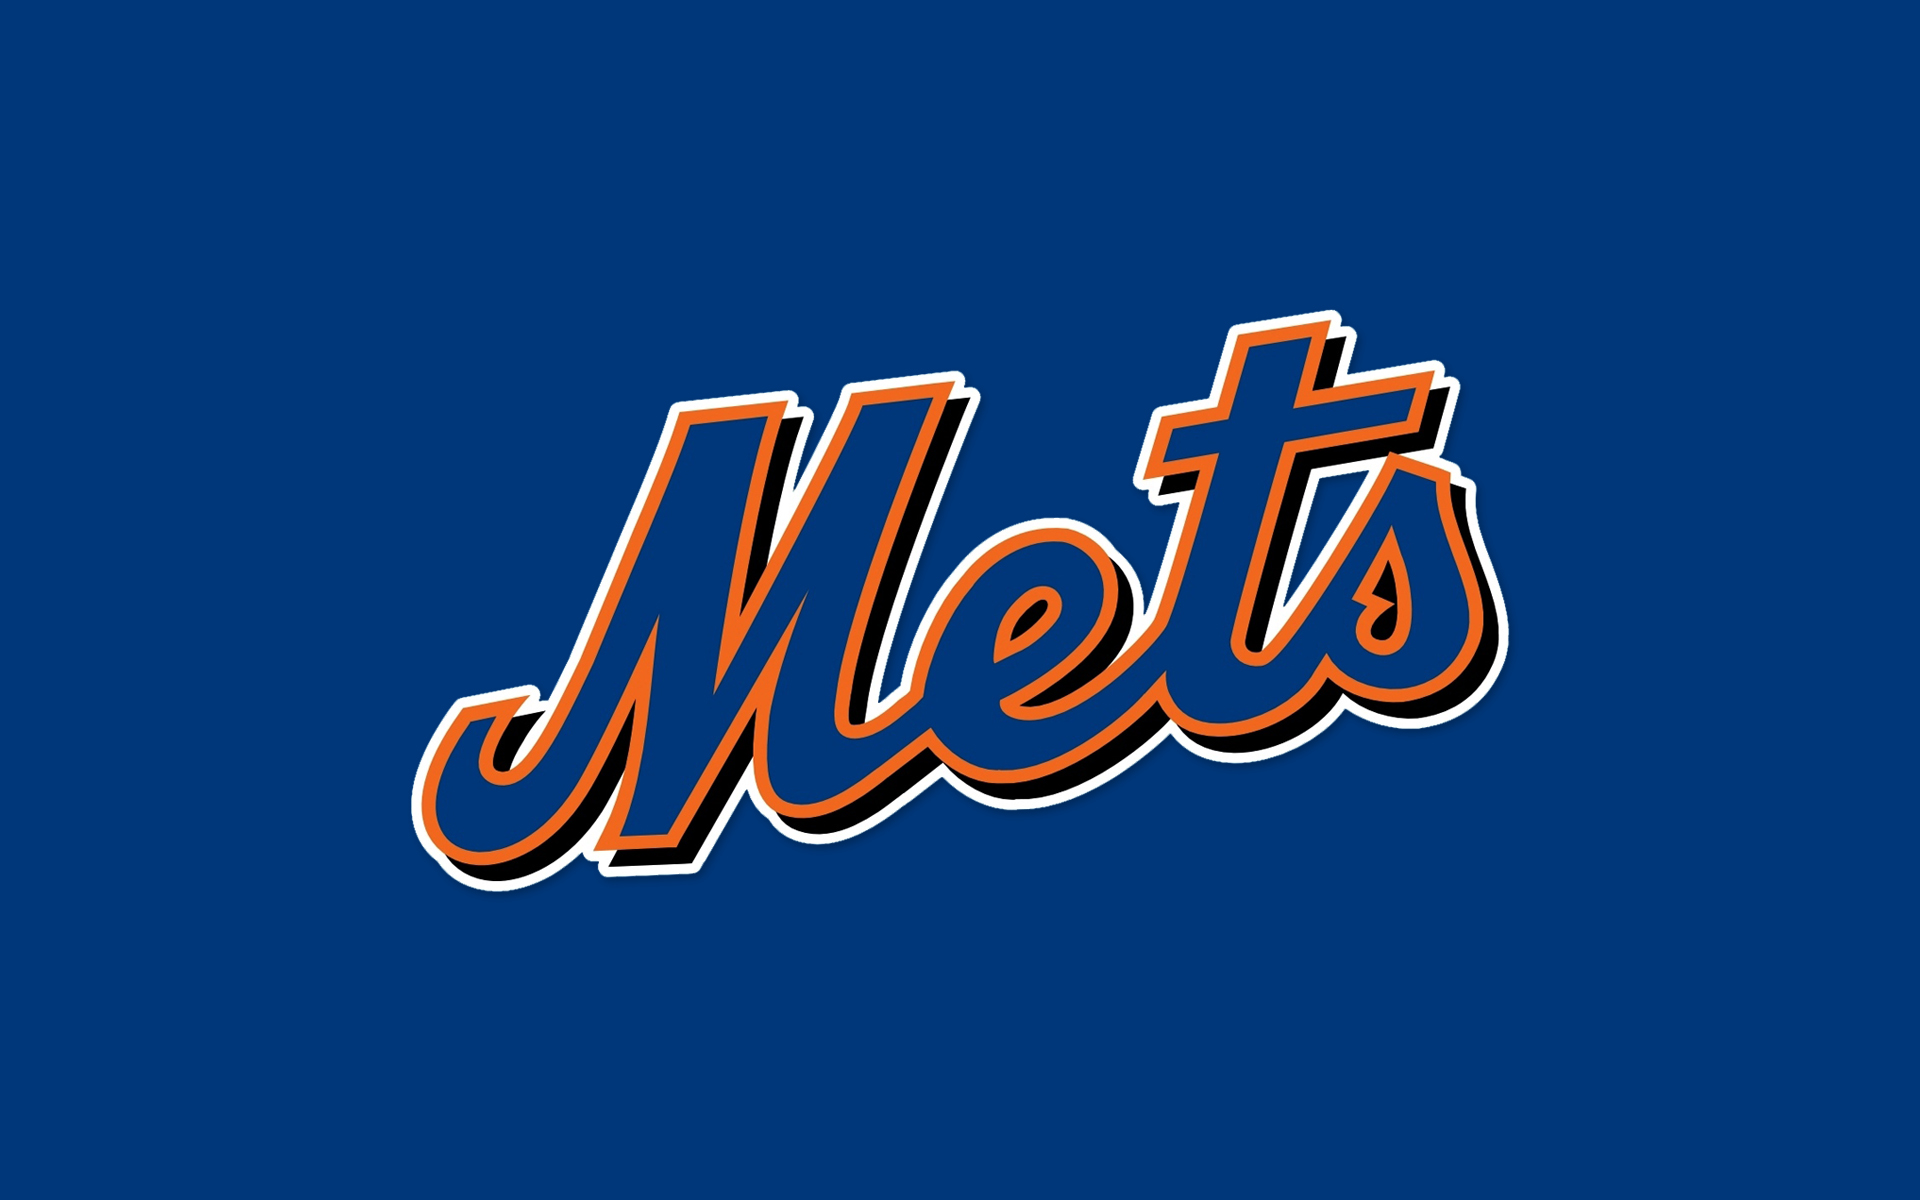 New York Mets wallpapers New York Mets background   Page 5 1920x1200